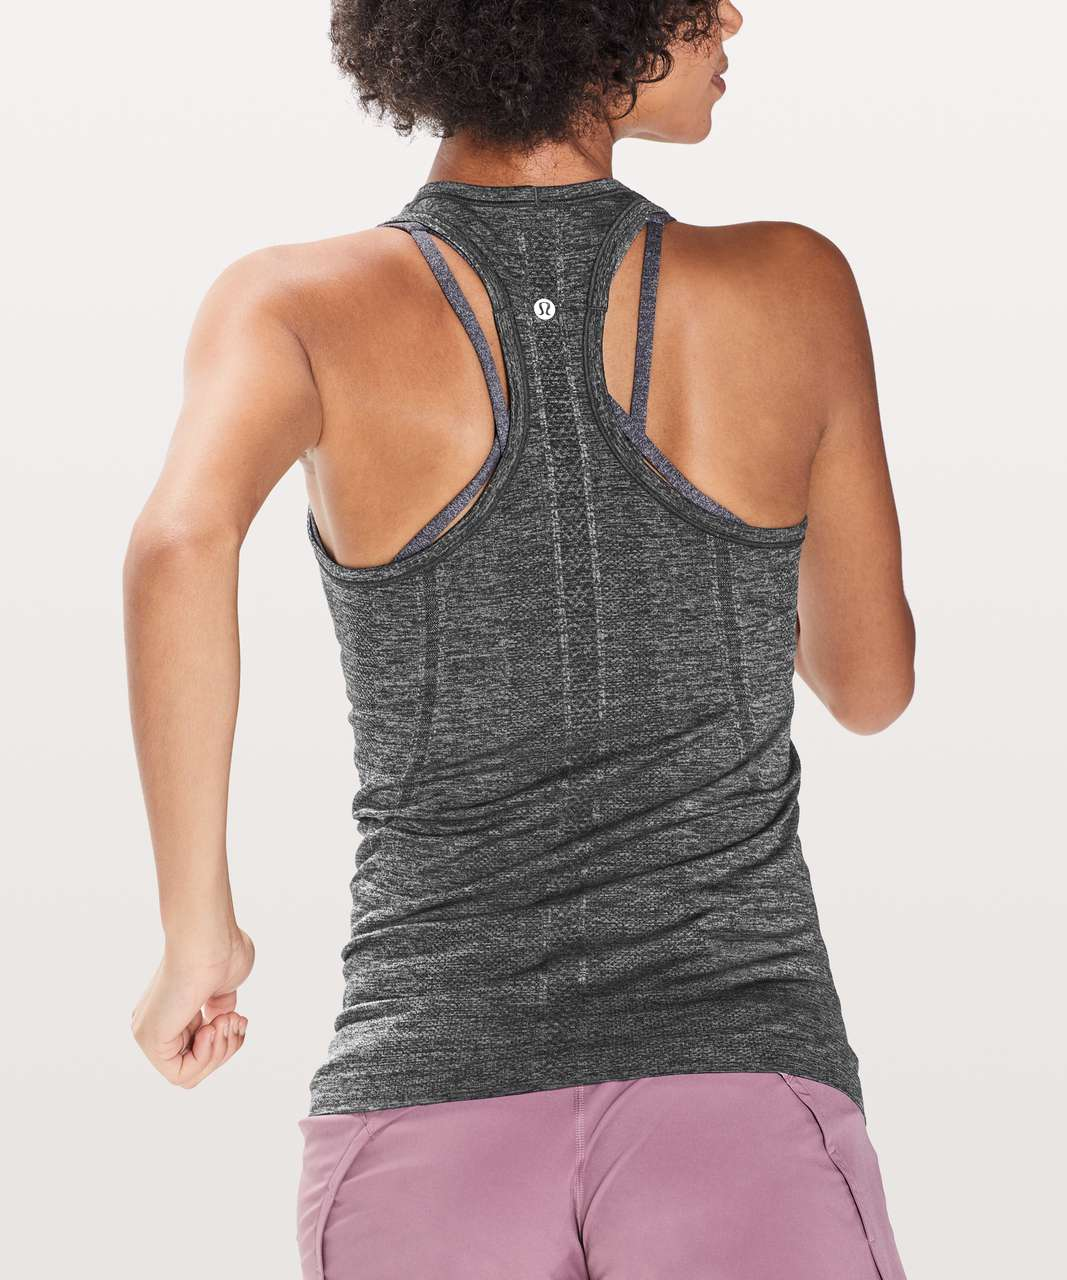 Lululemon Swiftly Tech Racerback - Black / Anchor